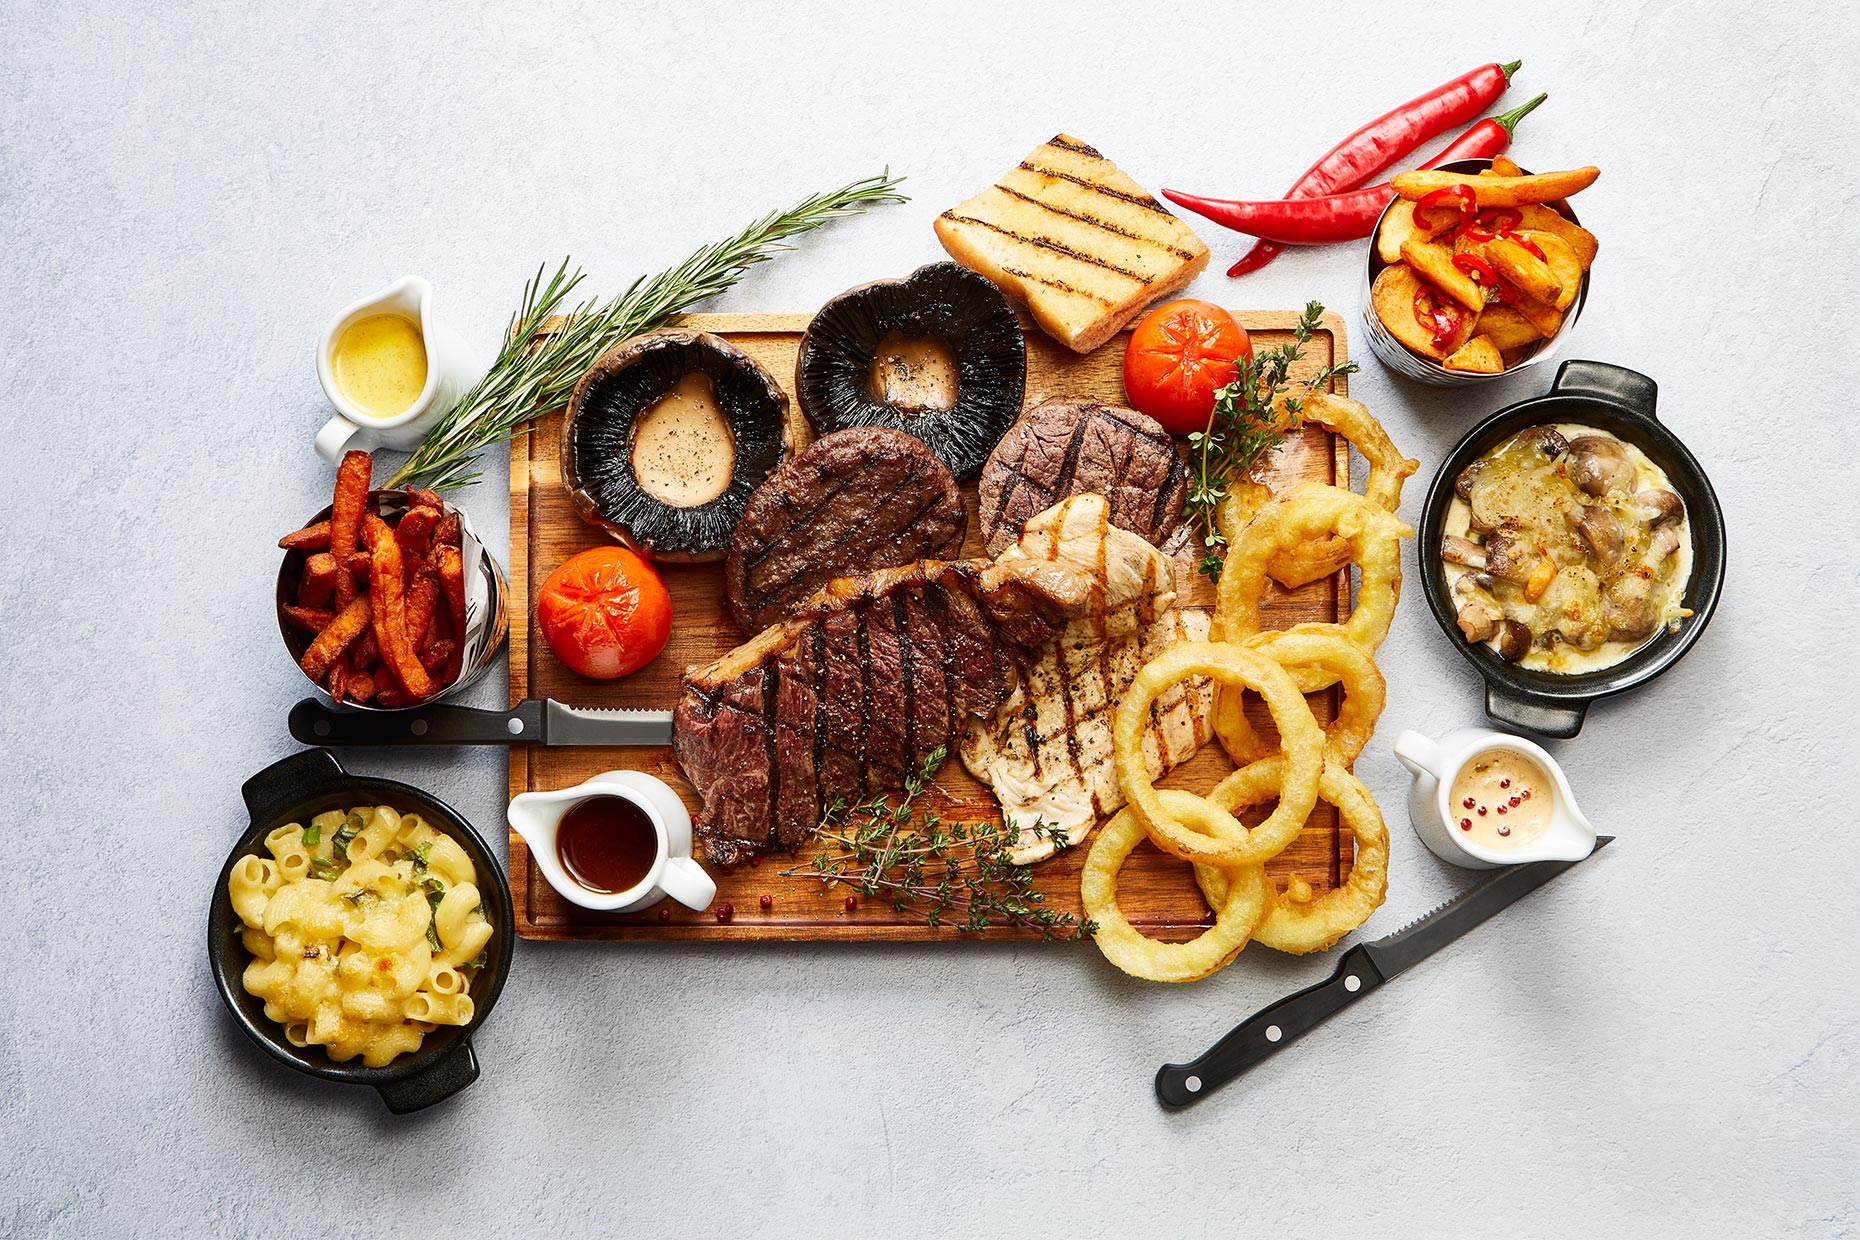 Steak Night Platter and all the Sides, RAD Hotel Group, Dalmeny Park, Glasgow food photographer